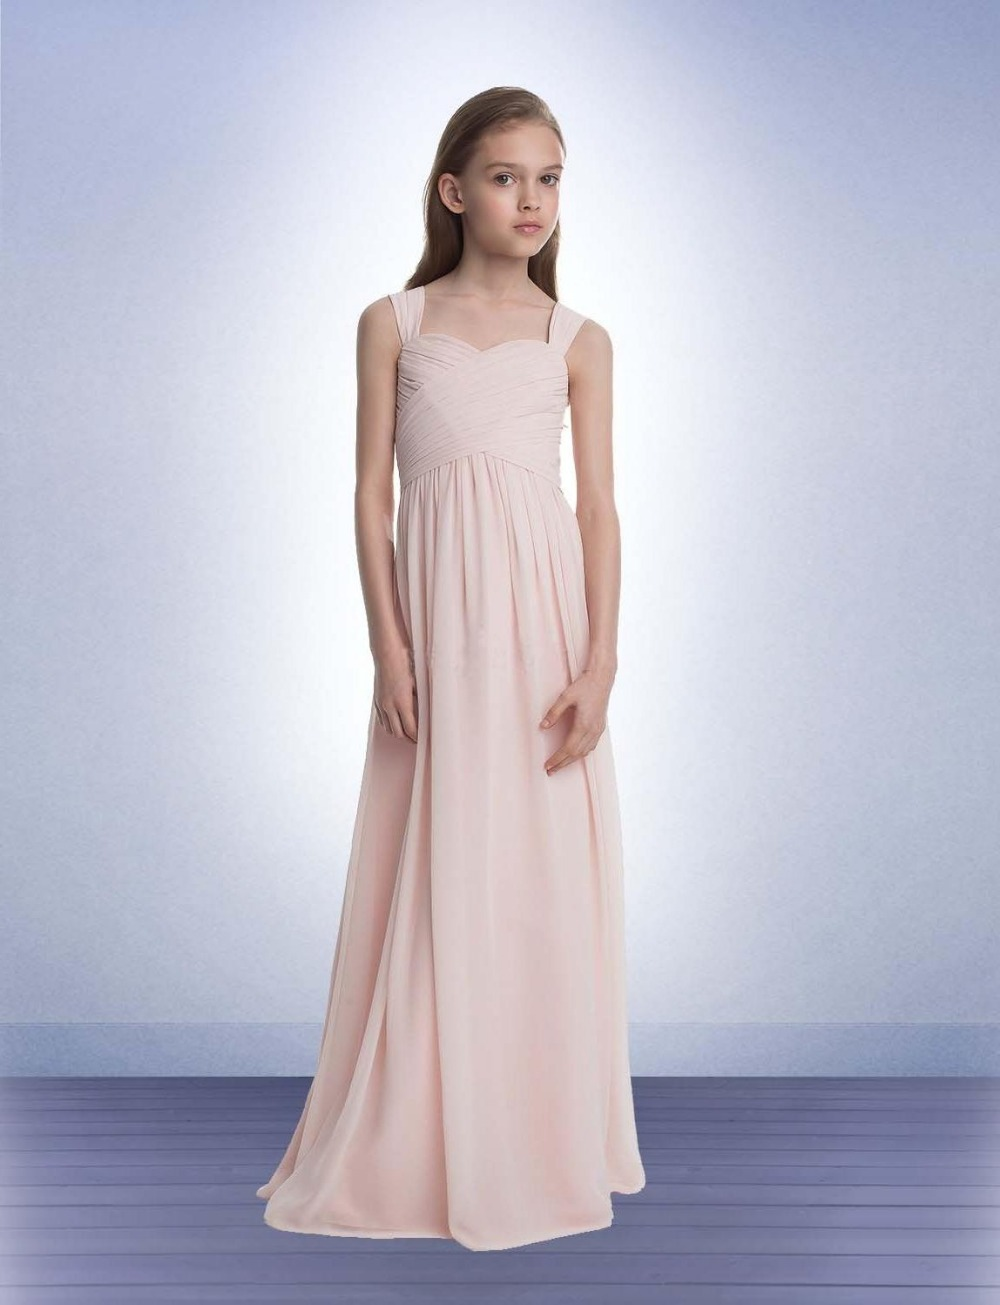 New modern wedding dresses junior bridesmaid dresses blush junior bridesmaid dresses blush ombrellifo Choice Image